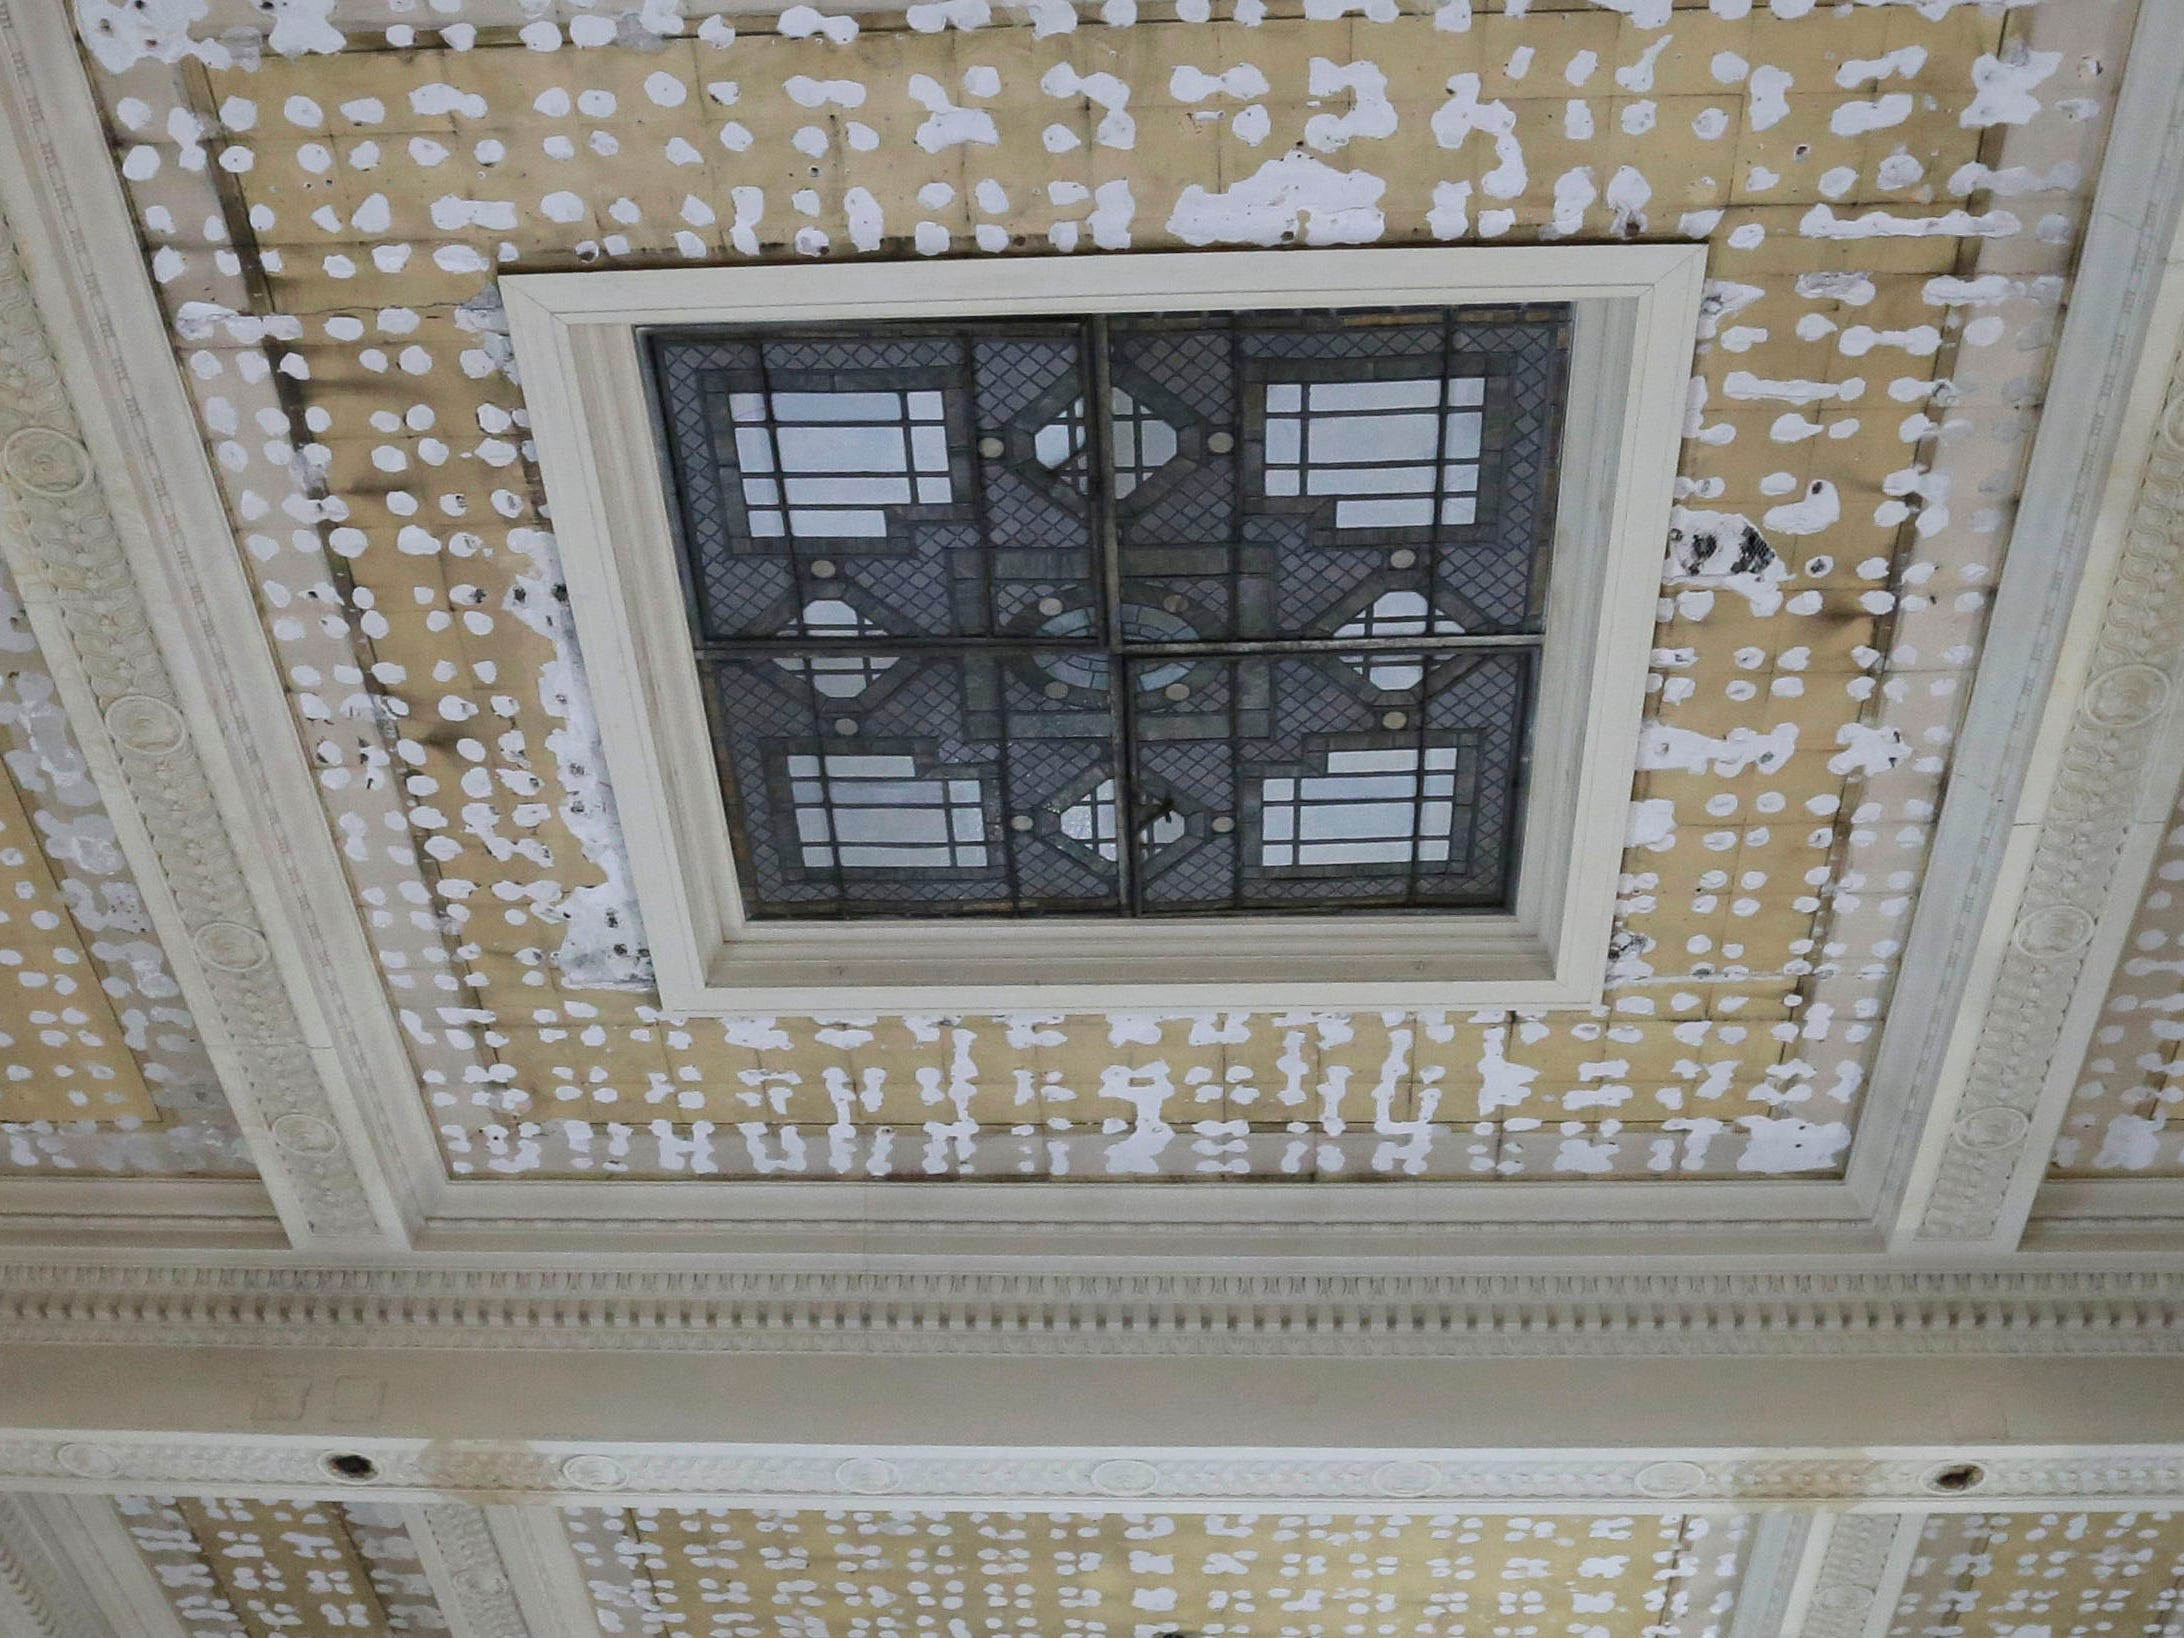 The stain glass window skylight in the ceiling of the council chambers will be again visible following the 10.5 million dollar renovation project at Sheboygan City Hall as seen, Wednesday, December 5, 2018, in Sheboygan, Wis. The skylight will be illuminated by a small bank of lights.